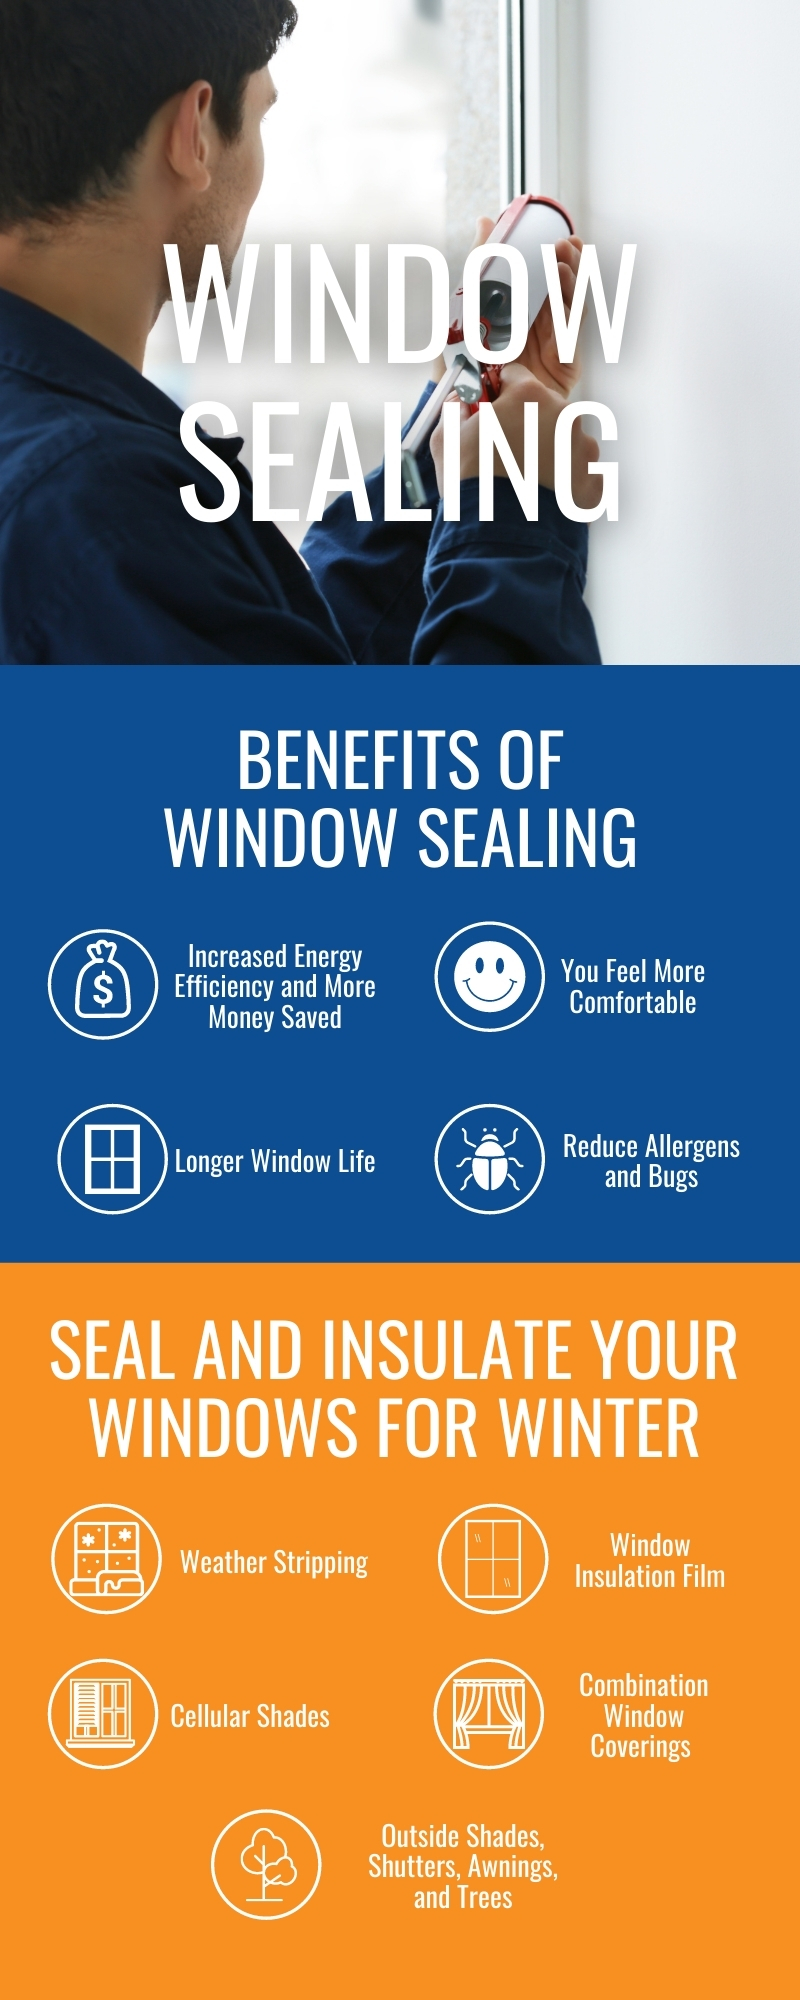 Benefits and Tips to Seal and Insulate Your Windows for Winter